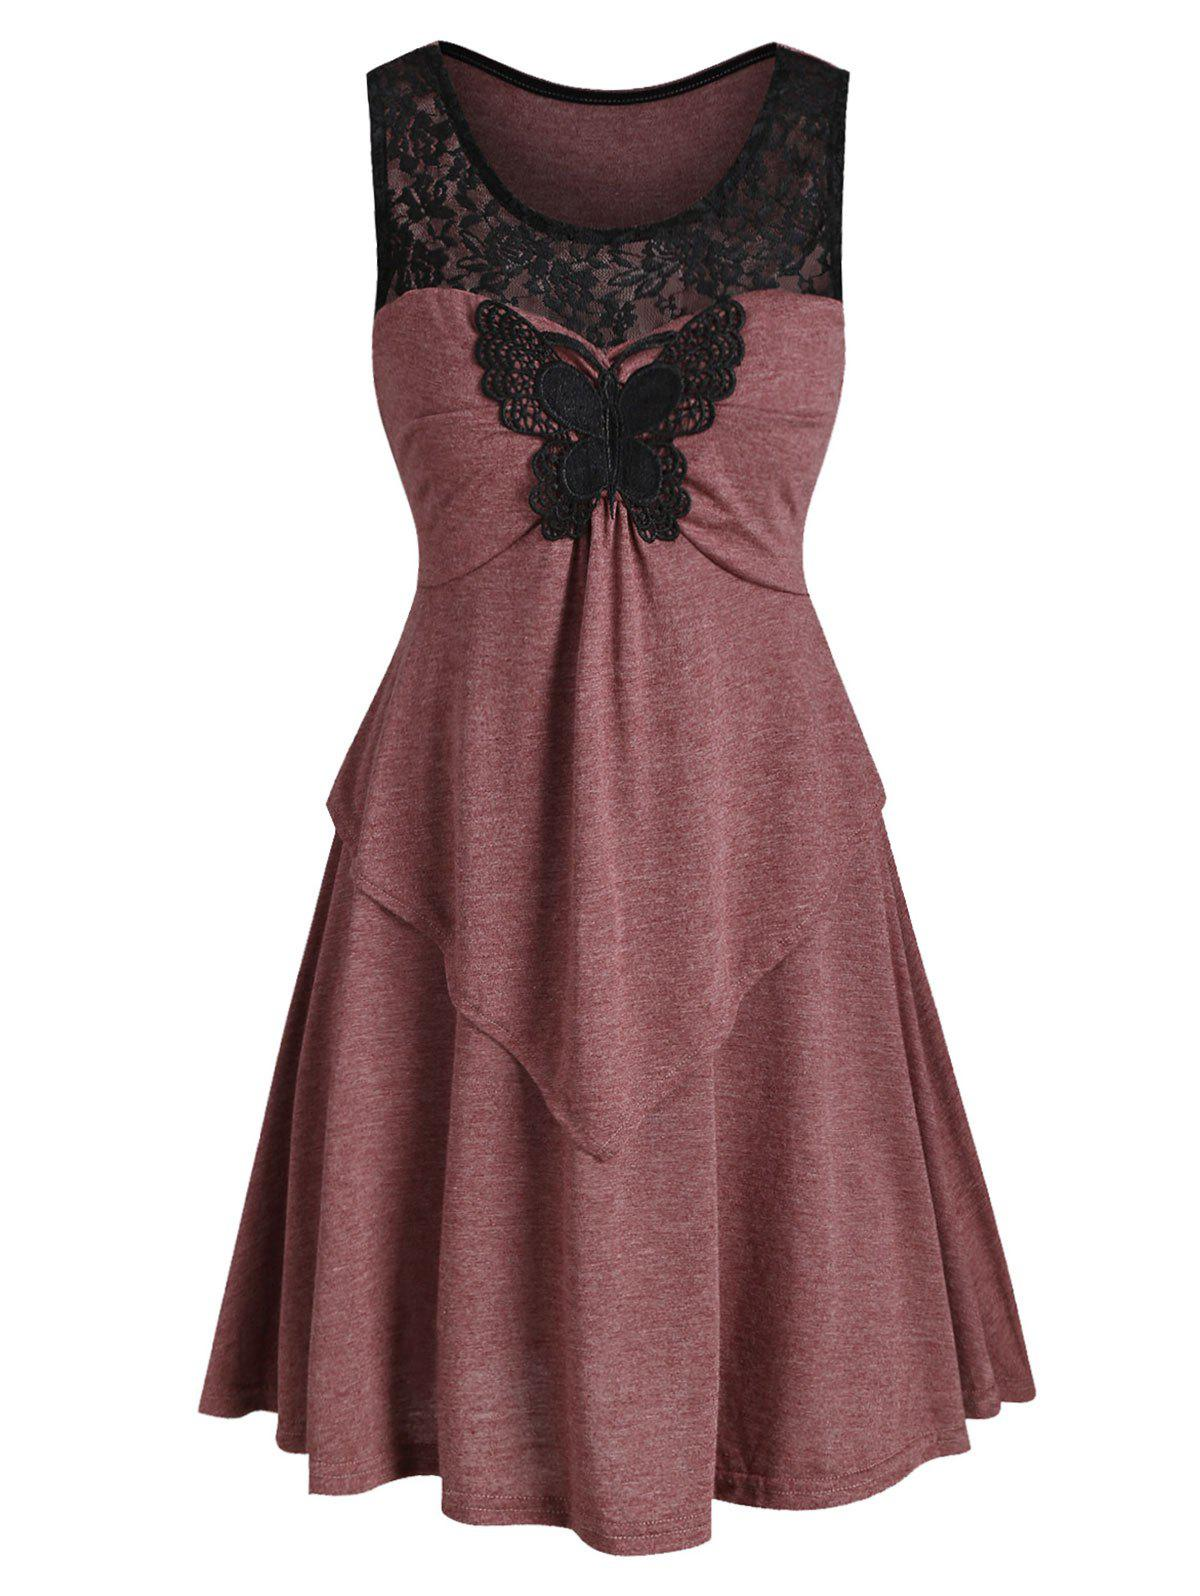 Lace Insert Butterfly Applique Tunic Dress - DEEP RED 2XL